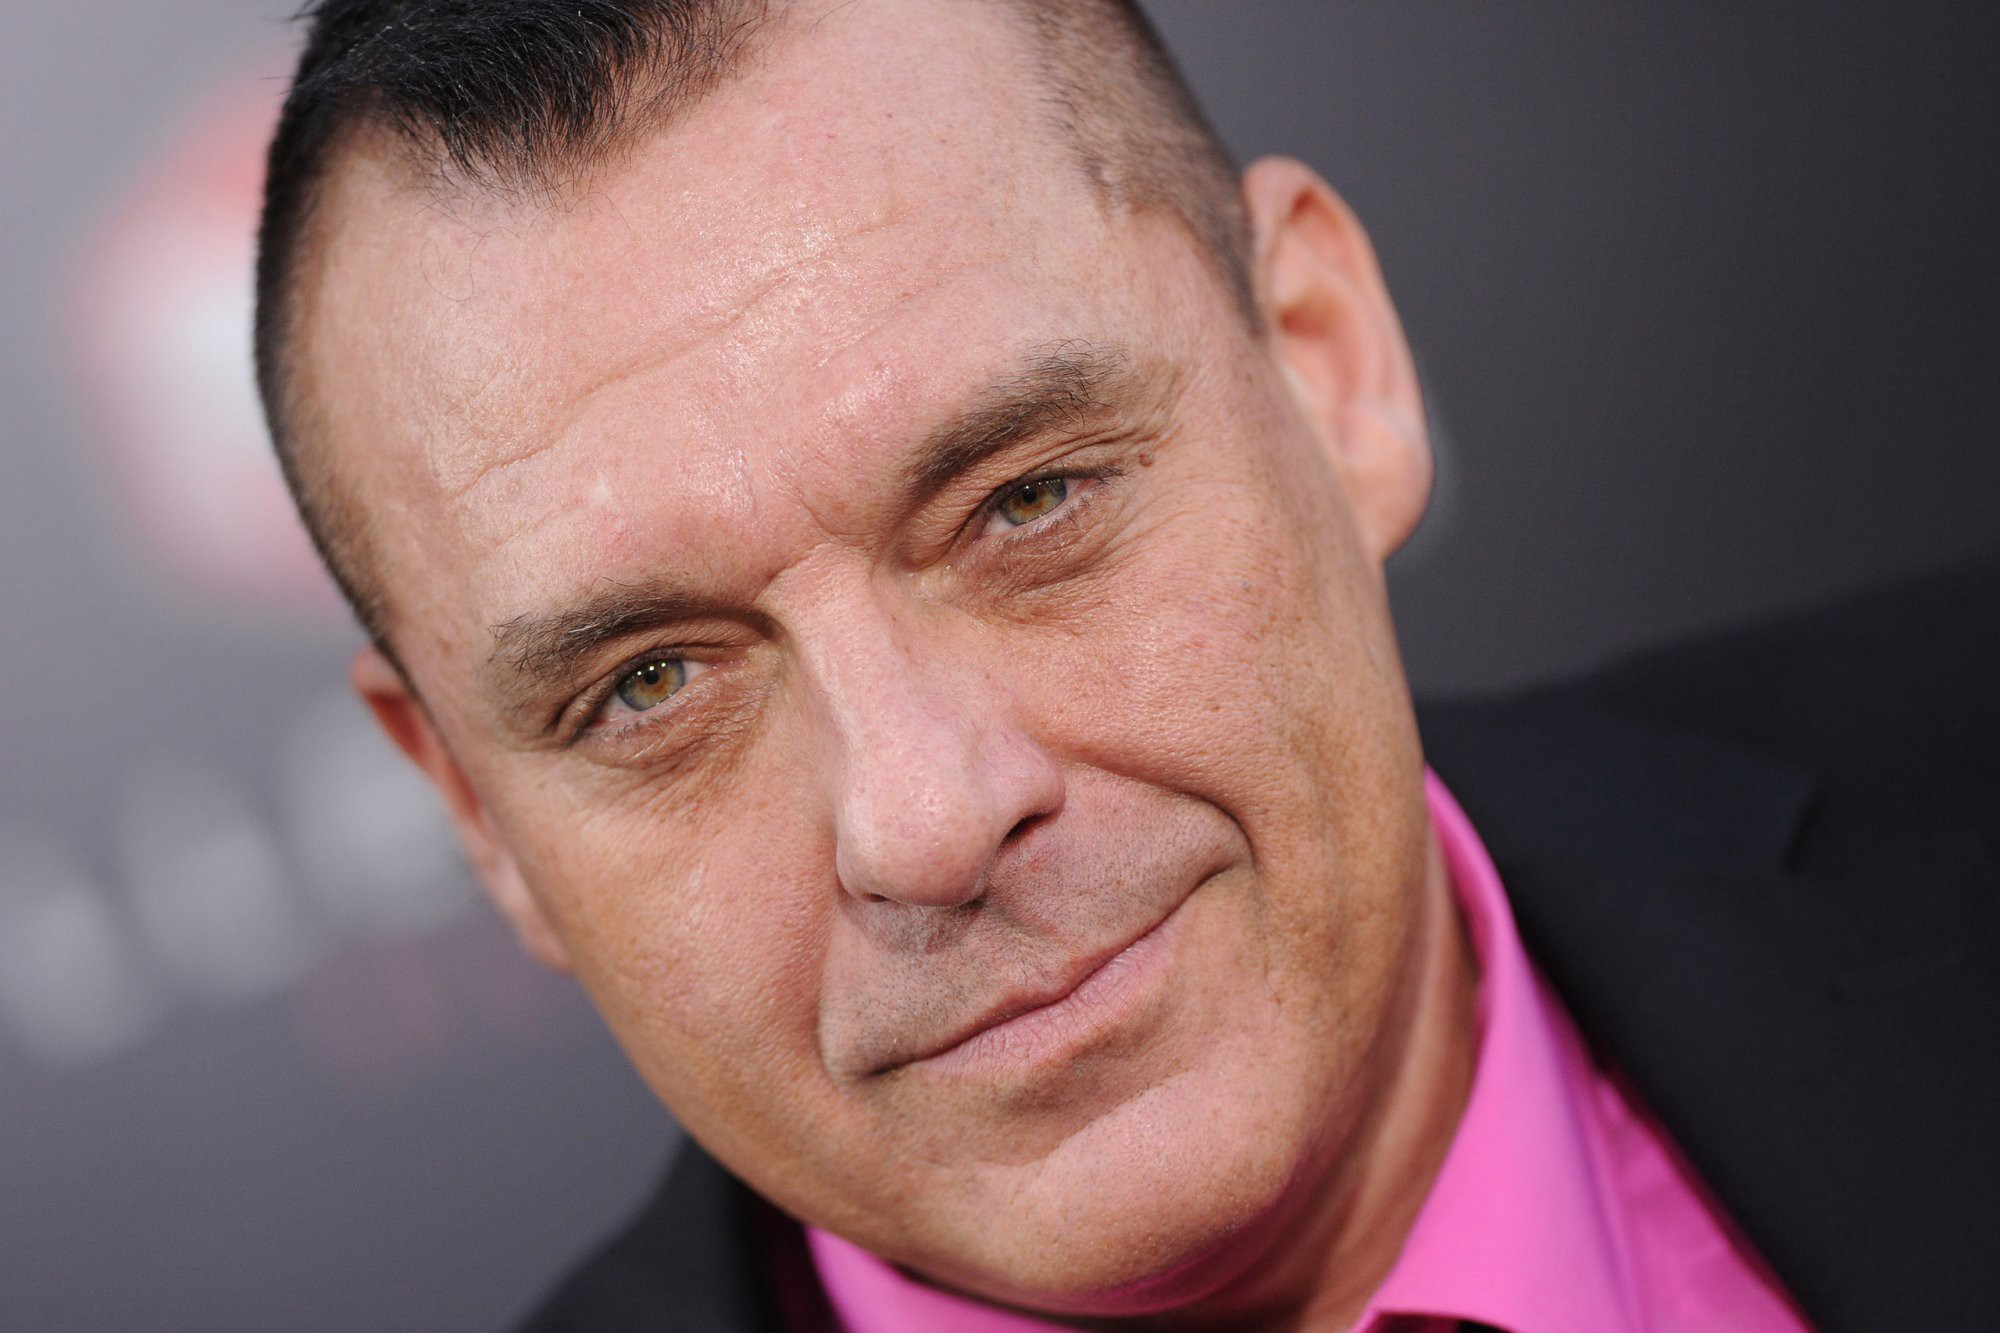 Ear Sex Porn watch full tom sizemore porn sex tape and free celebrity